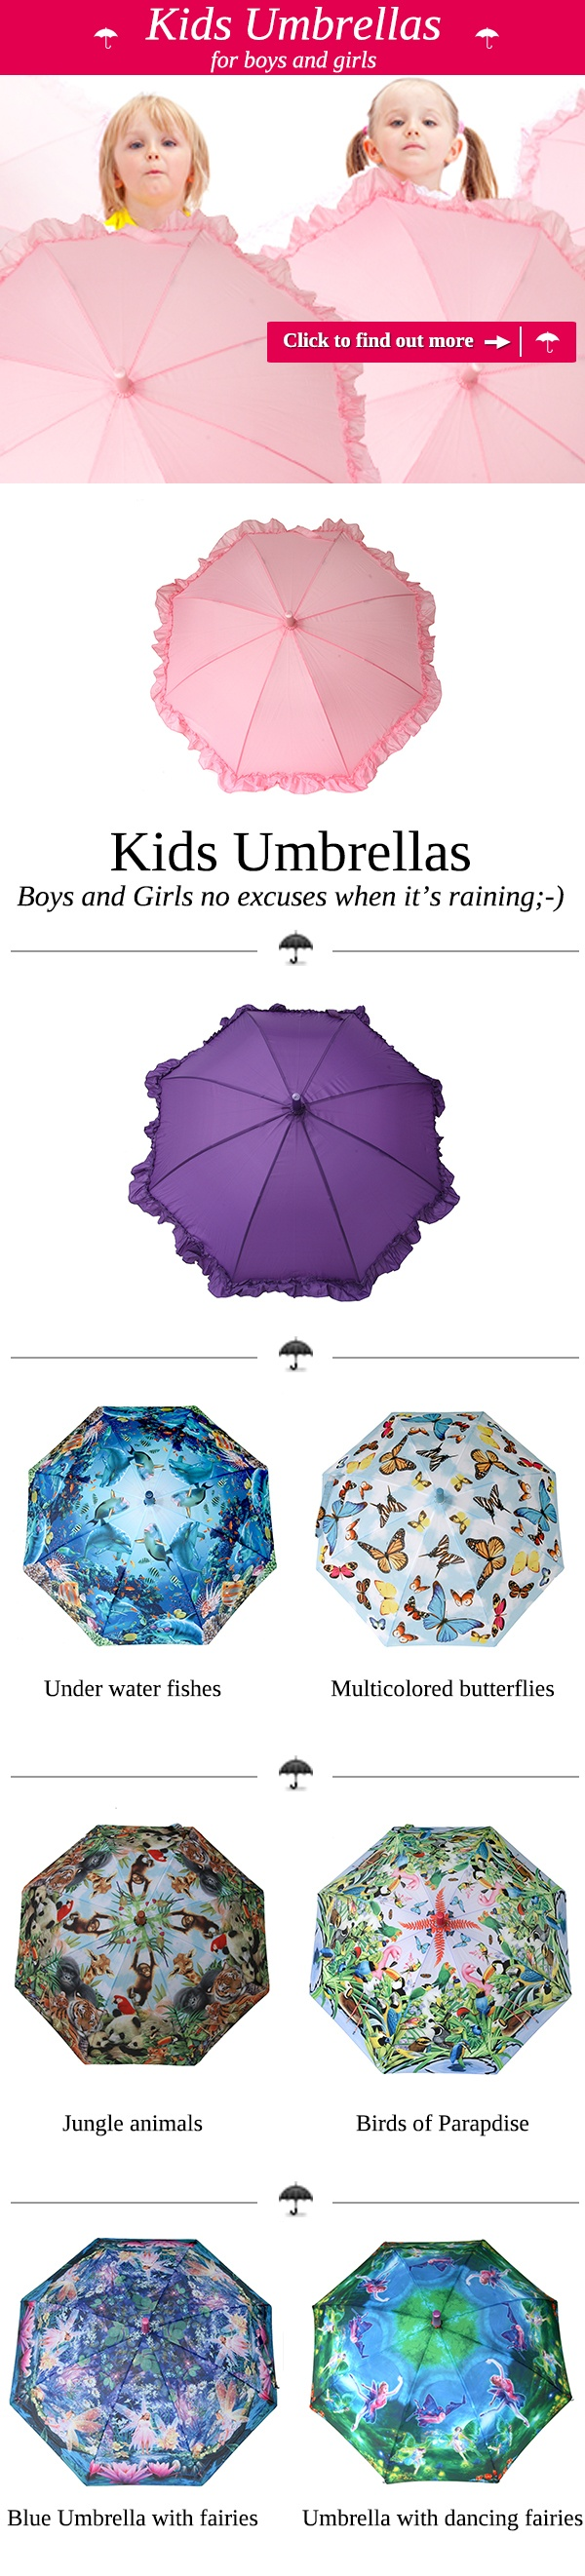 No excuses when it's raining. Click on the image to find out our kids #umbrellas are printed with nice and cute motifs of #butterflies, #fishes and many more to brighten every rainy day.  https://www.rosemarie-schulz.eu/en/15-kids-umbrellas